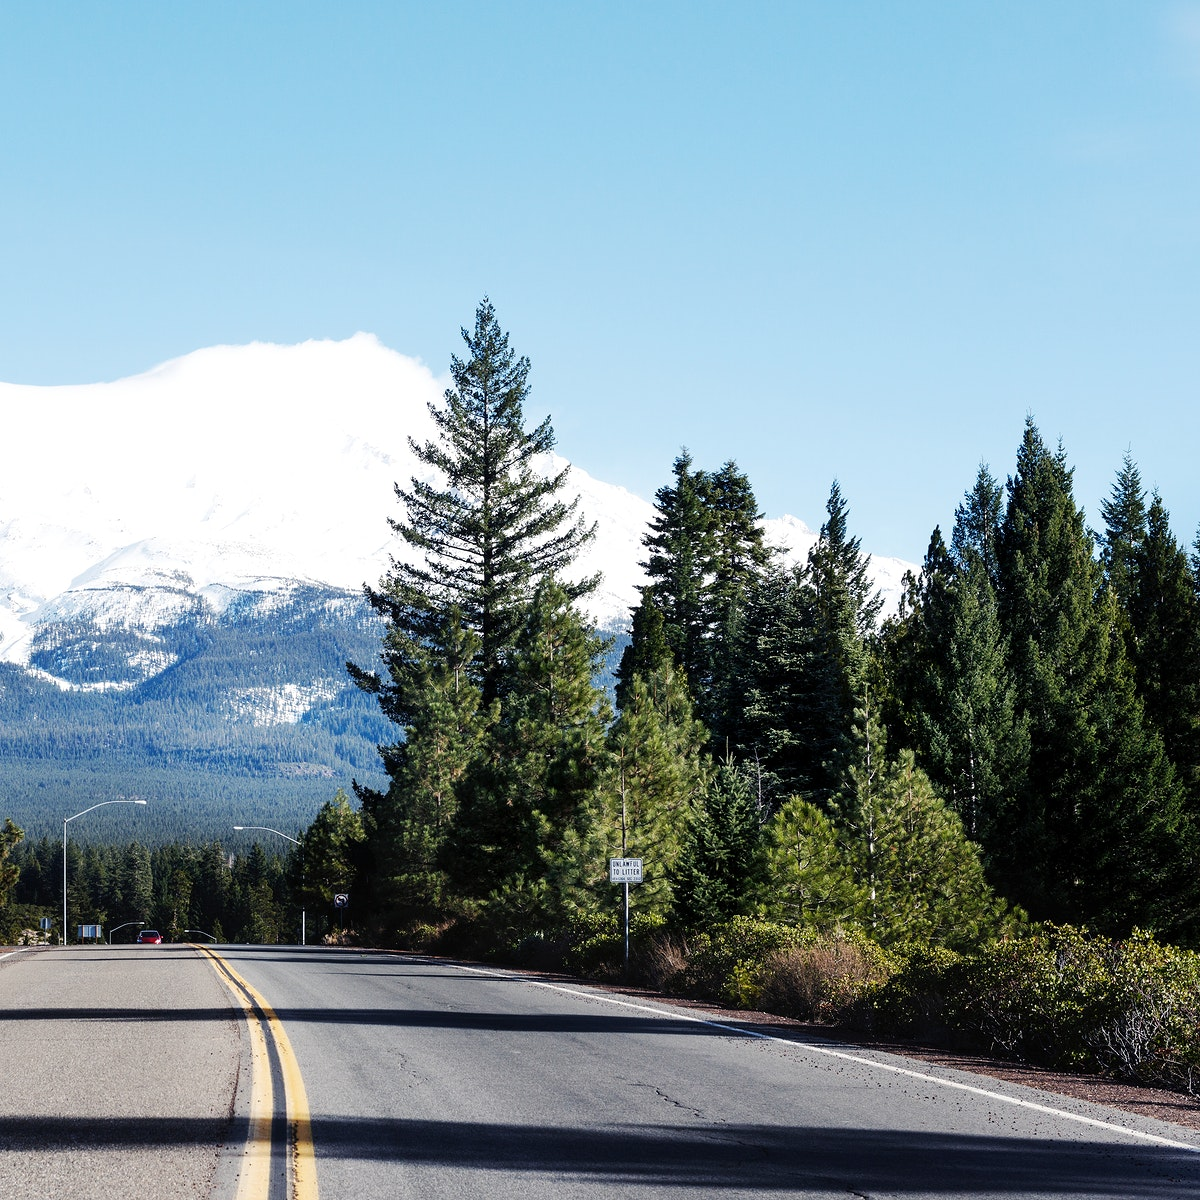 Soaring Mount Shasta is visible from miles away in north-central California. Original image from Carol M. Highsmith's…